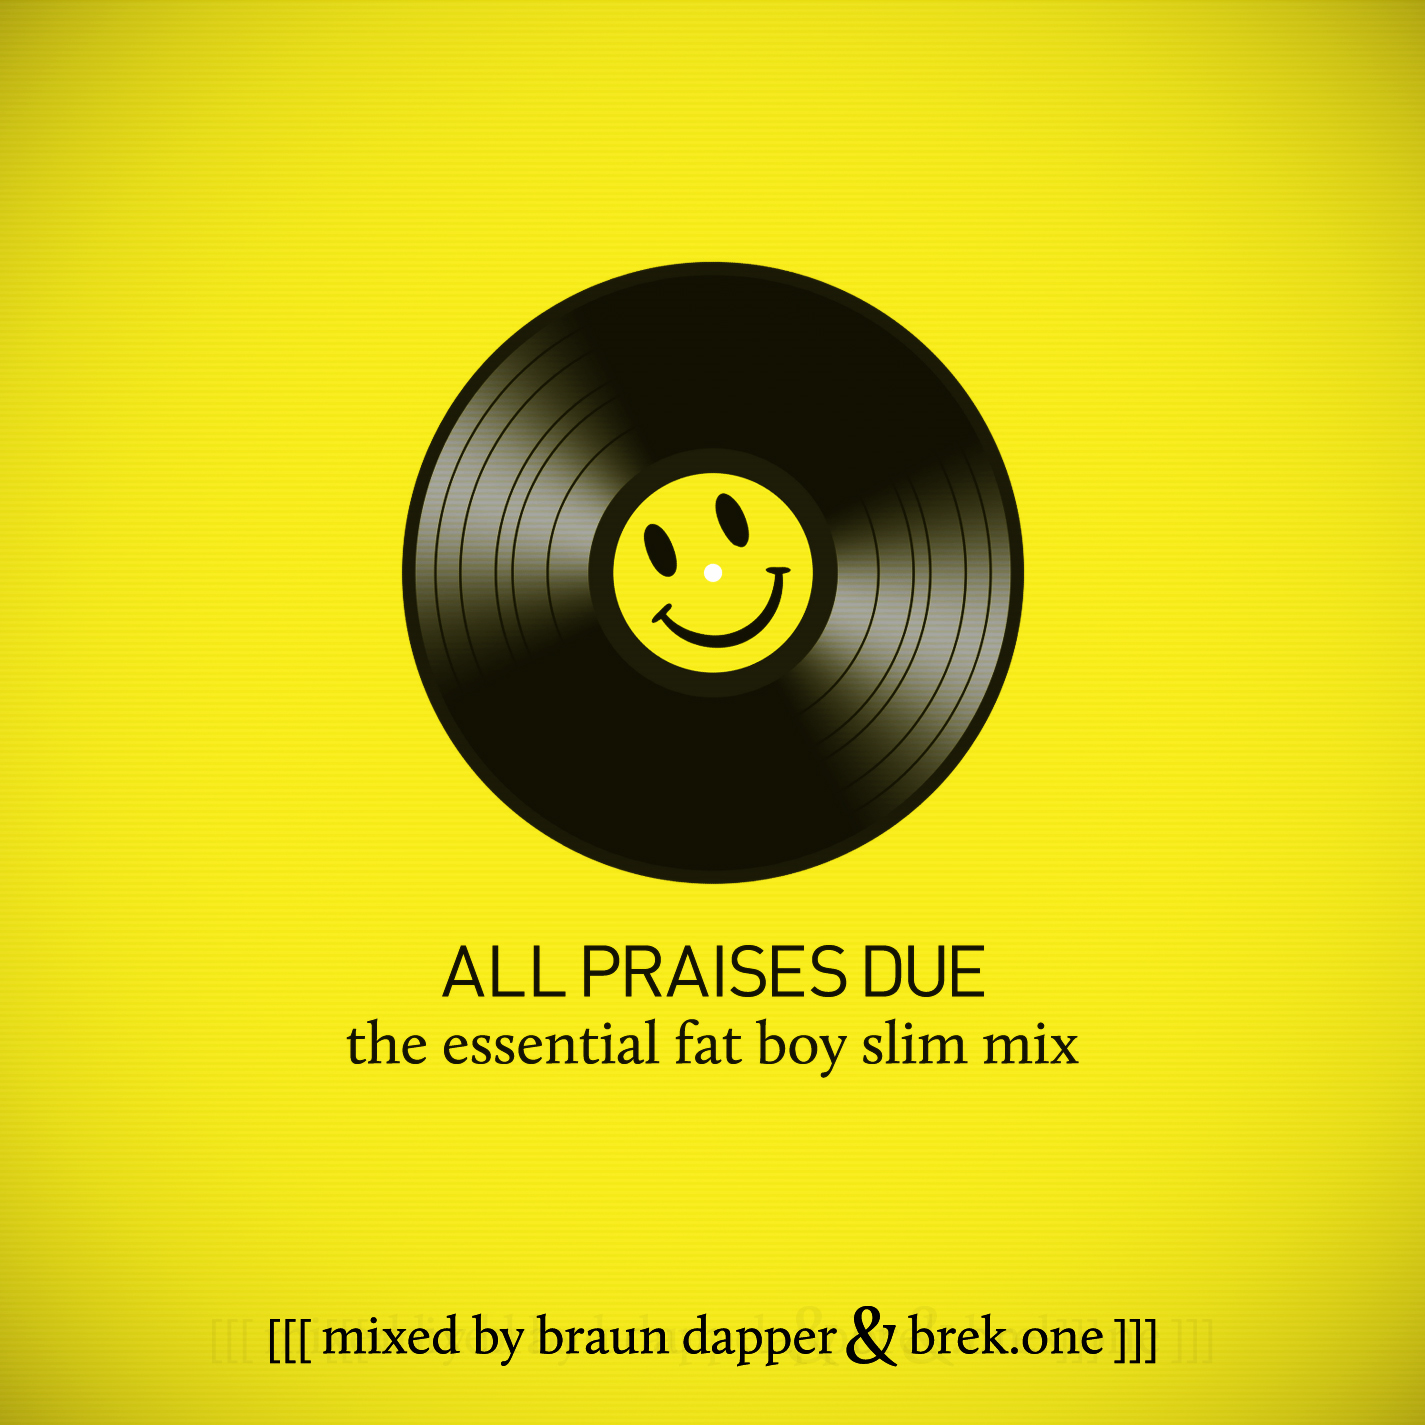 This is a mix of Fatboy Slim tracks and samples used by Fatboy Slim — compiled, assembled, and mixed by Club Royale (Boston) Saturday resident DJ's BRAUN DAPPER (aka DJ Braun Draper) and myself for Royale's 2 year anniversary.  STREAM/LISTEN ONLINE VIA SOUNDCLOUD —  HTTP://SOUNDCLOUD.COM/BREKONE/ALL_PRAISES_DUE  DOWNLOAD —   http://bit.ly/AllPraisesDueMix   I will be performing alongside FATBOY SLIM this Saturday, May 19th, for Royale's 2 Year Anniversary. More info + tickets:  www.RoyaleBoston.com